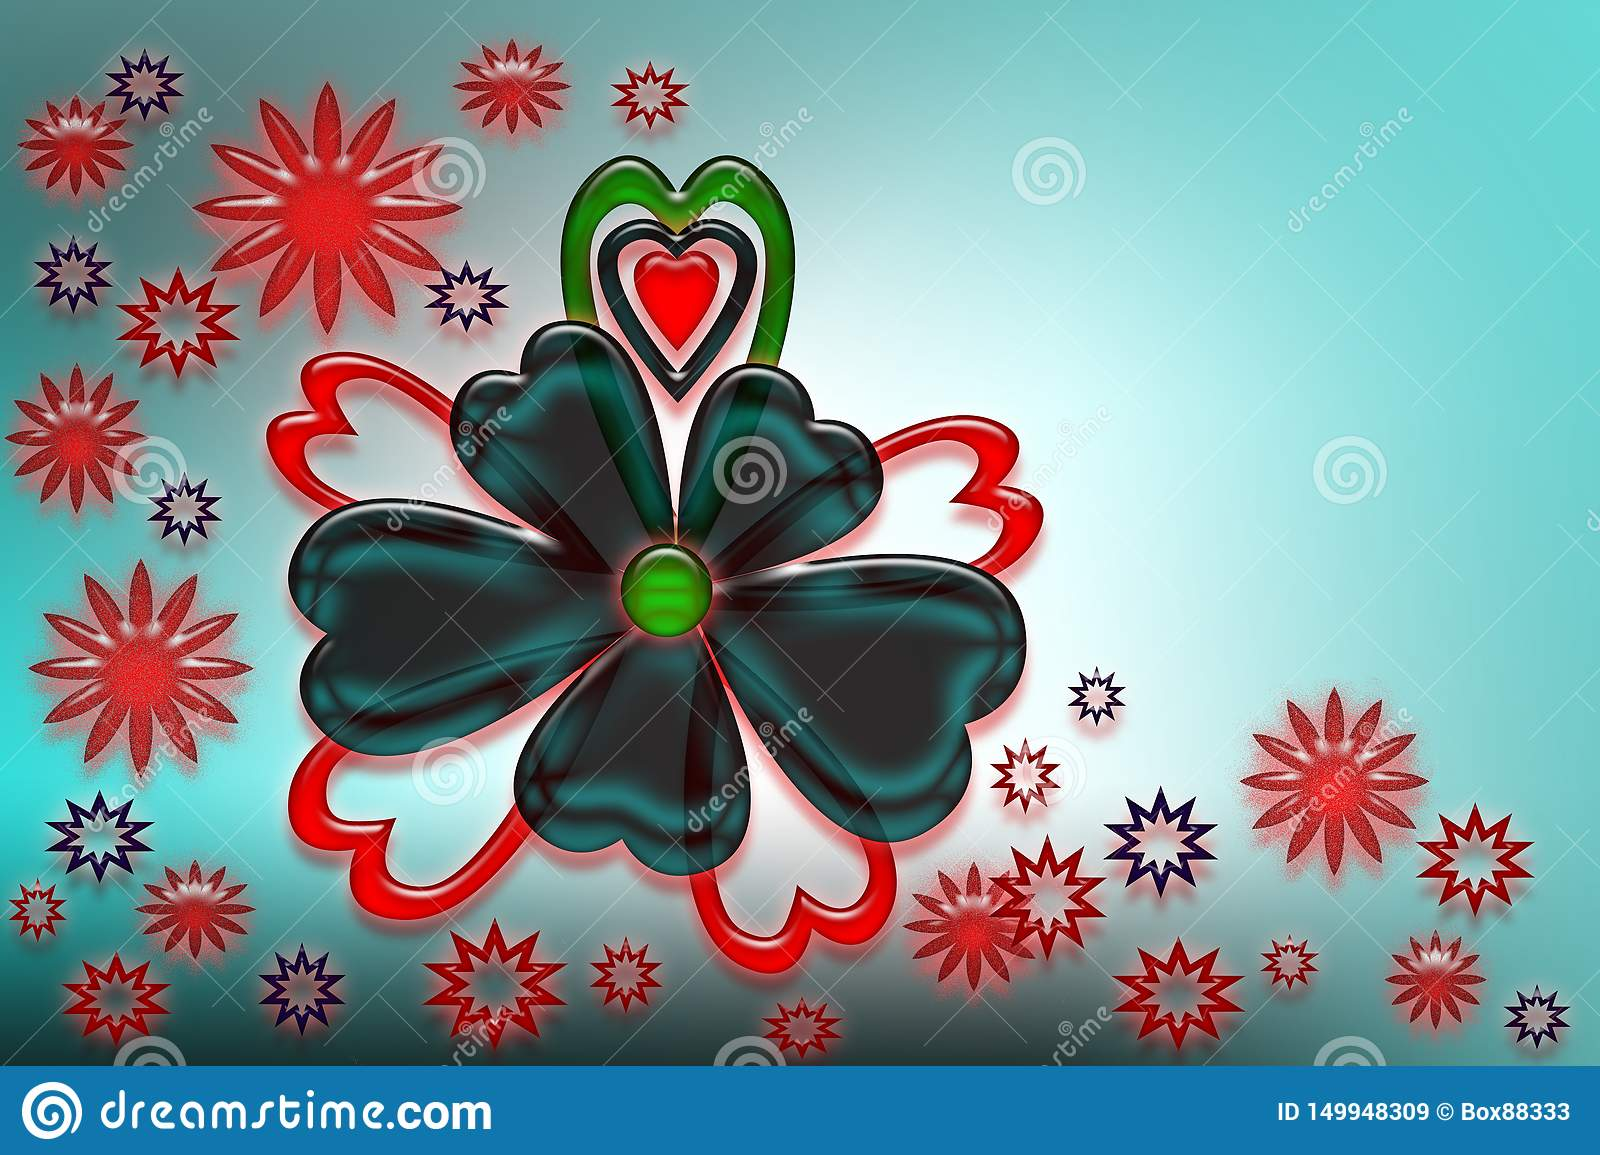 Stylized hearts, flowers and stars.